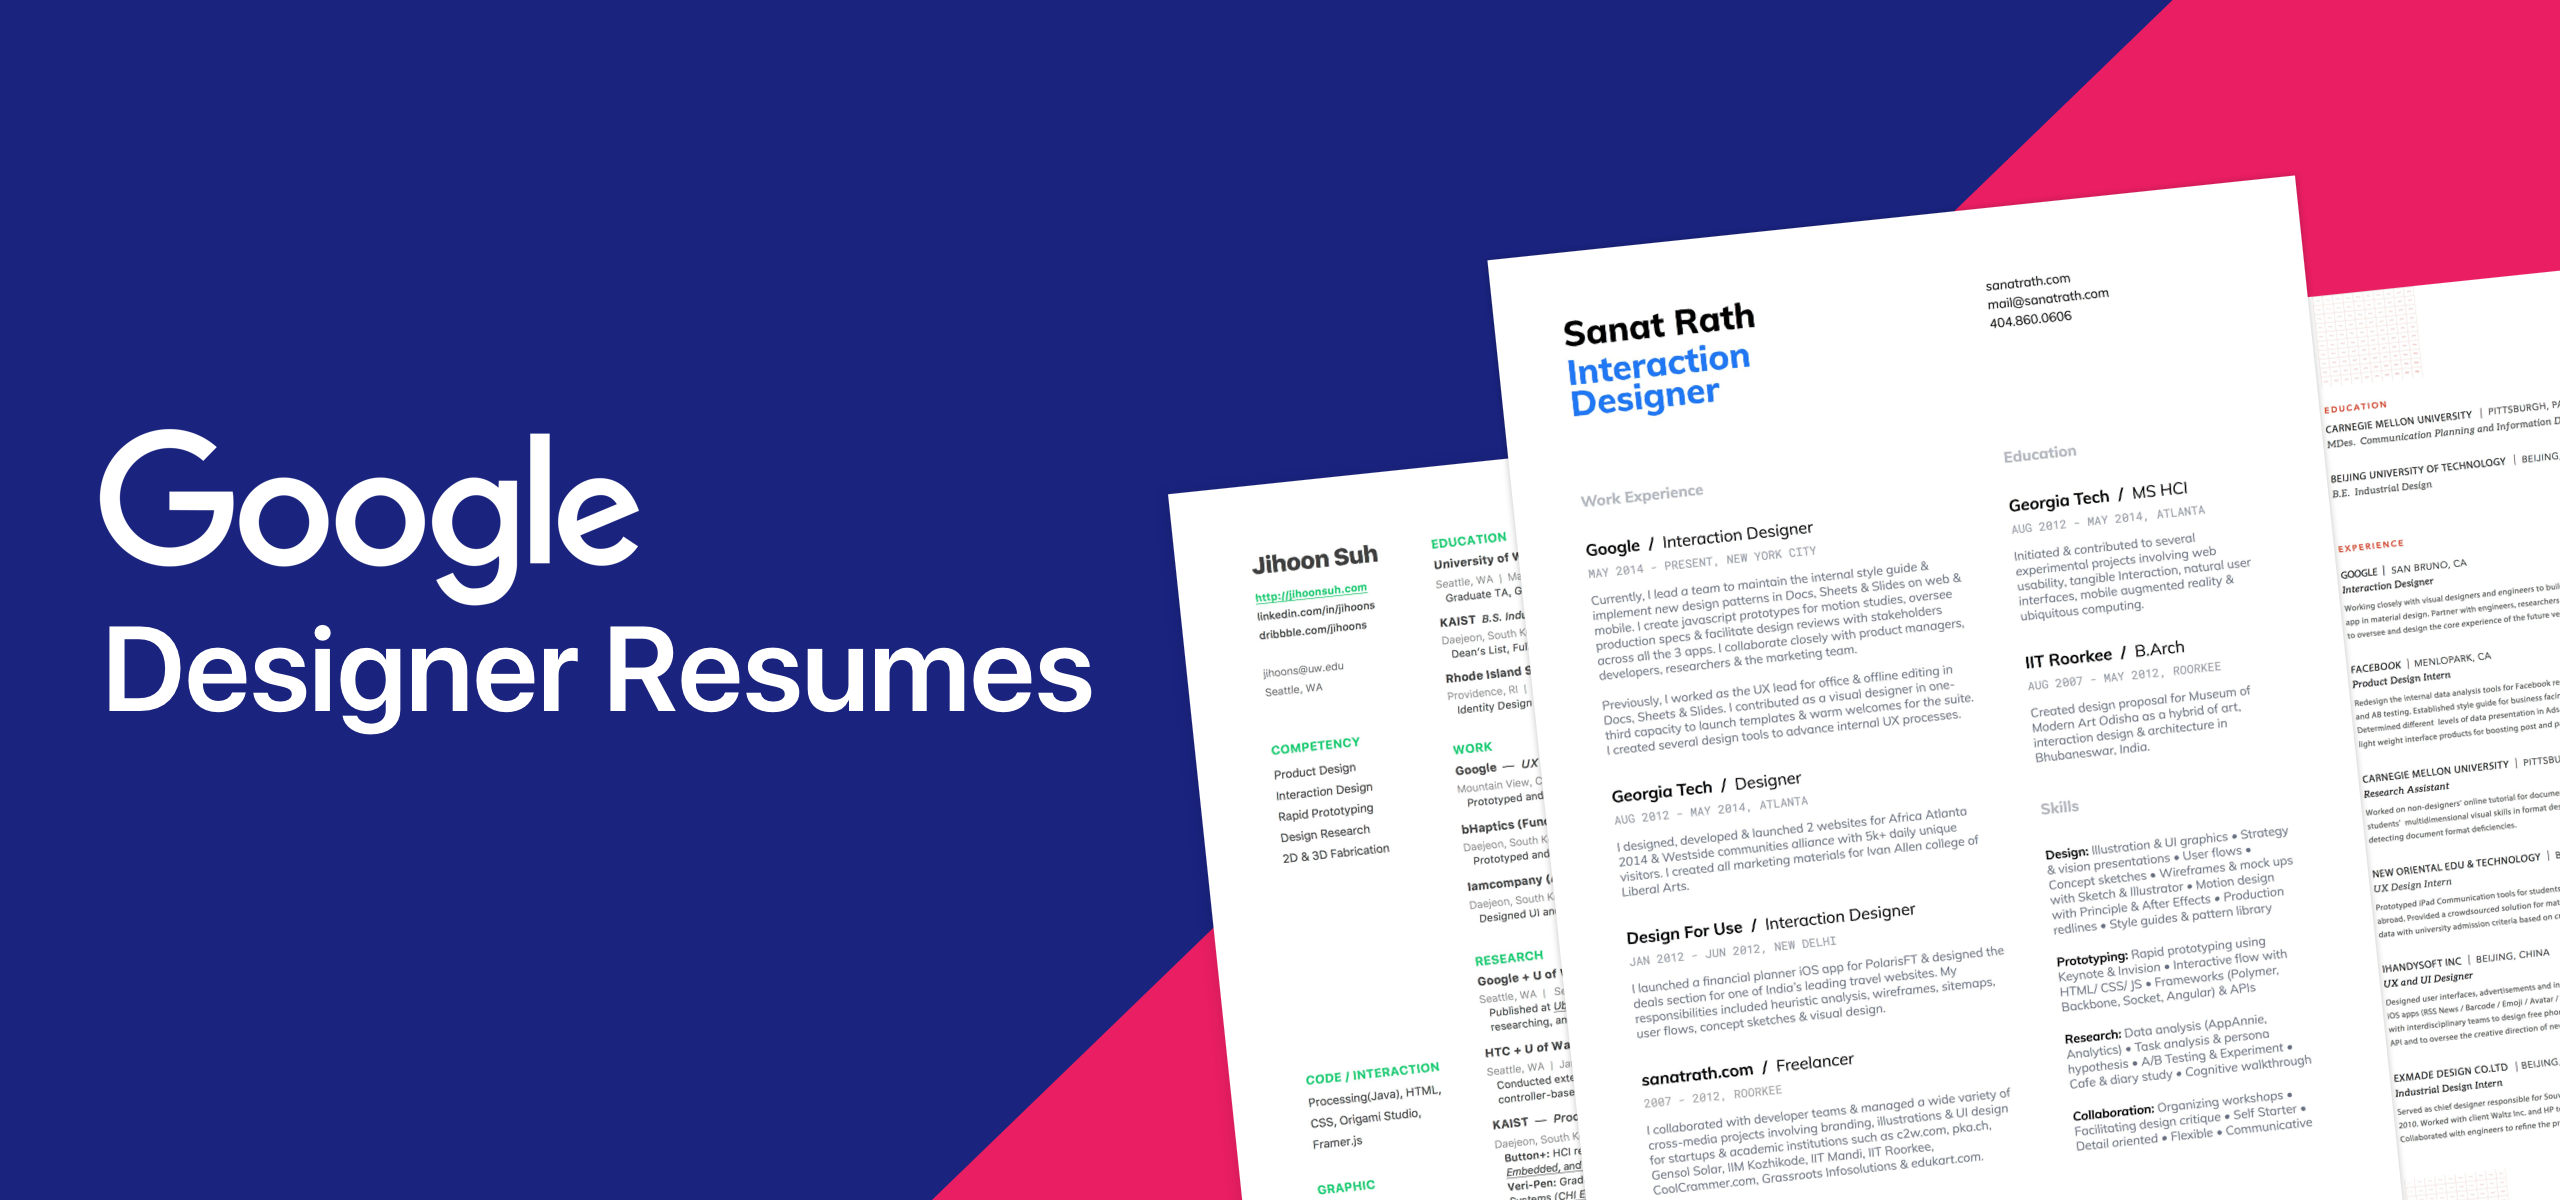 10 Amazing Designer Resumes That Passed Google S Bar By Bestfolios Com Medium